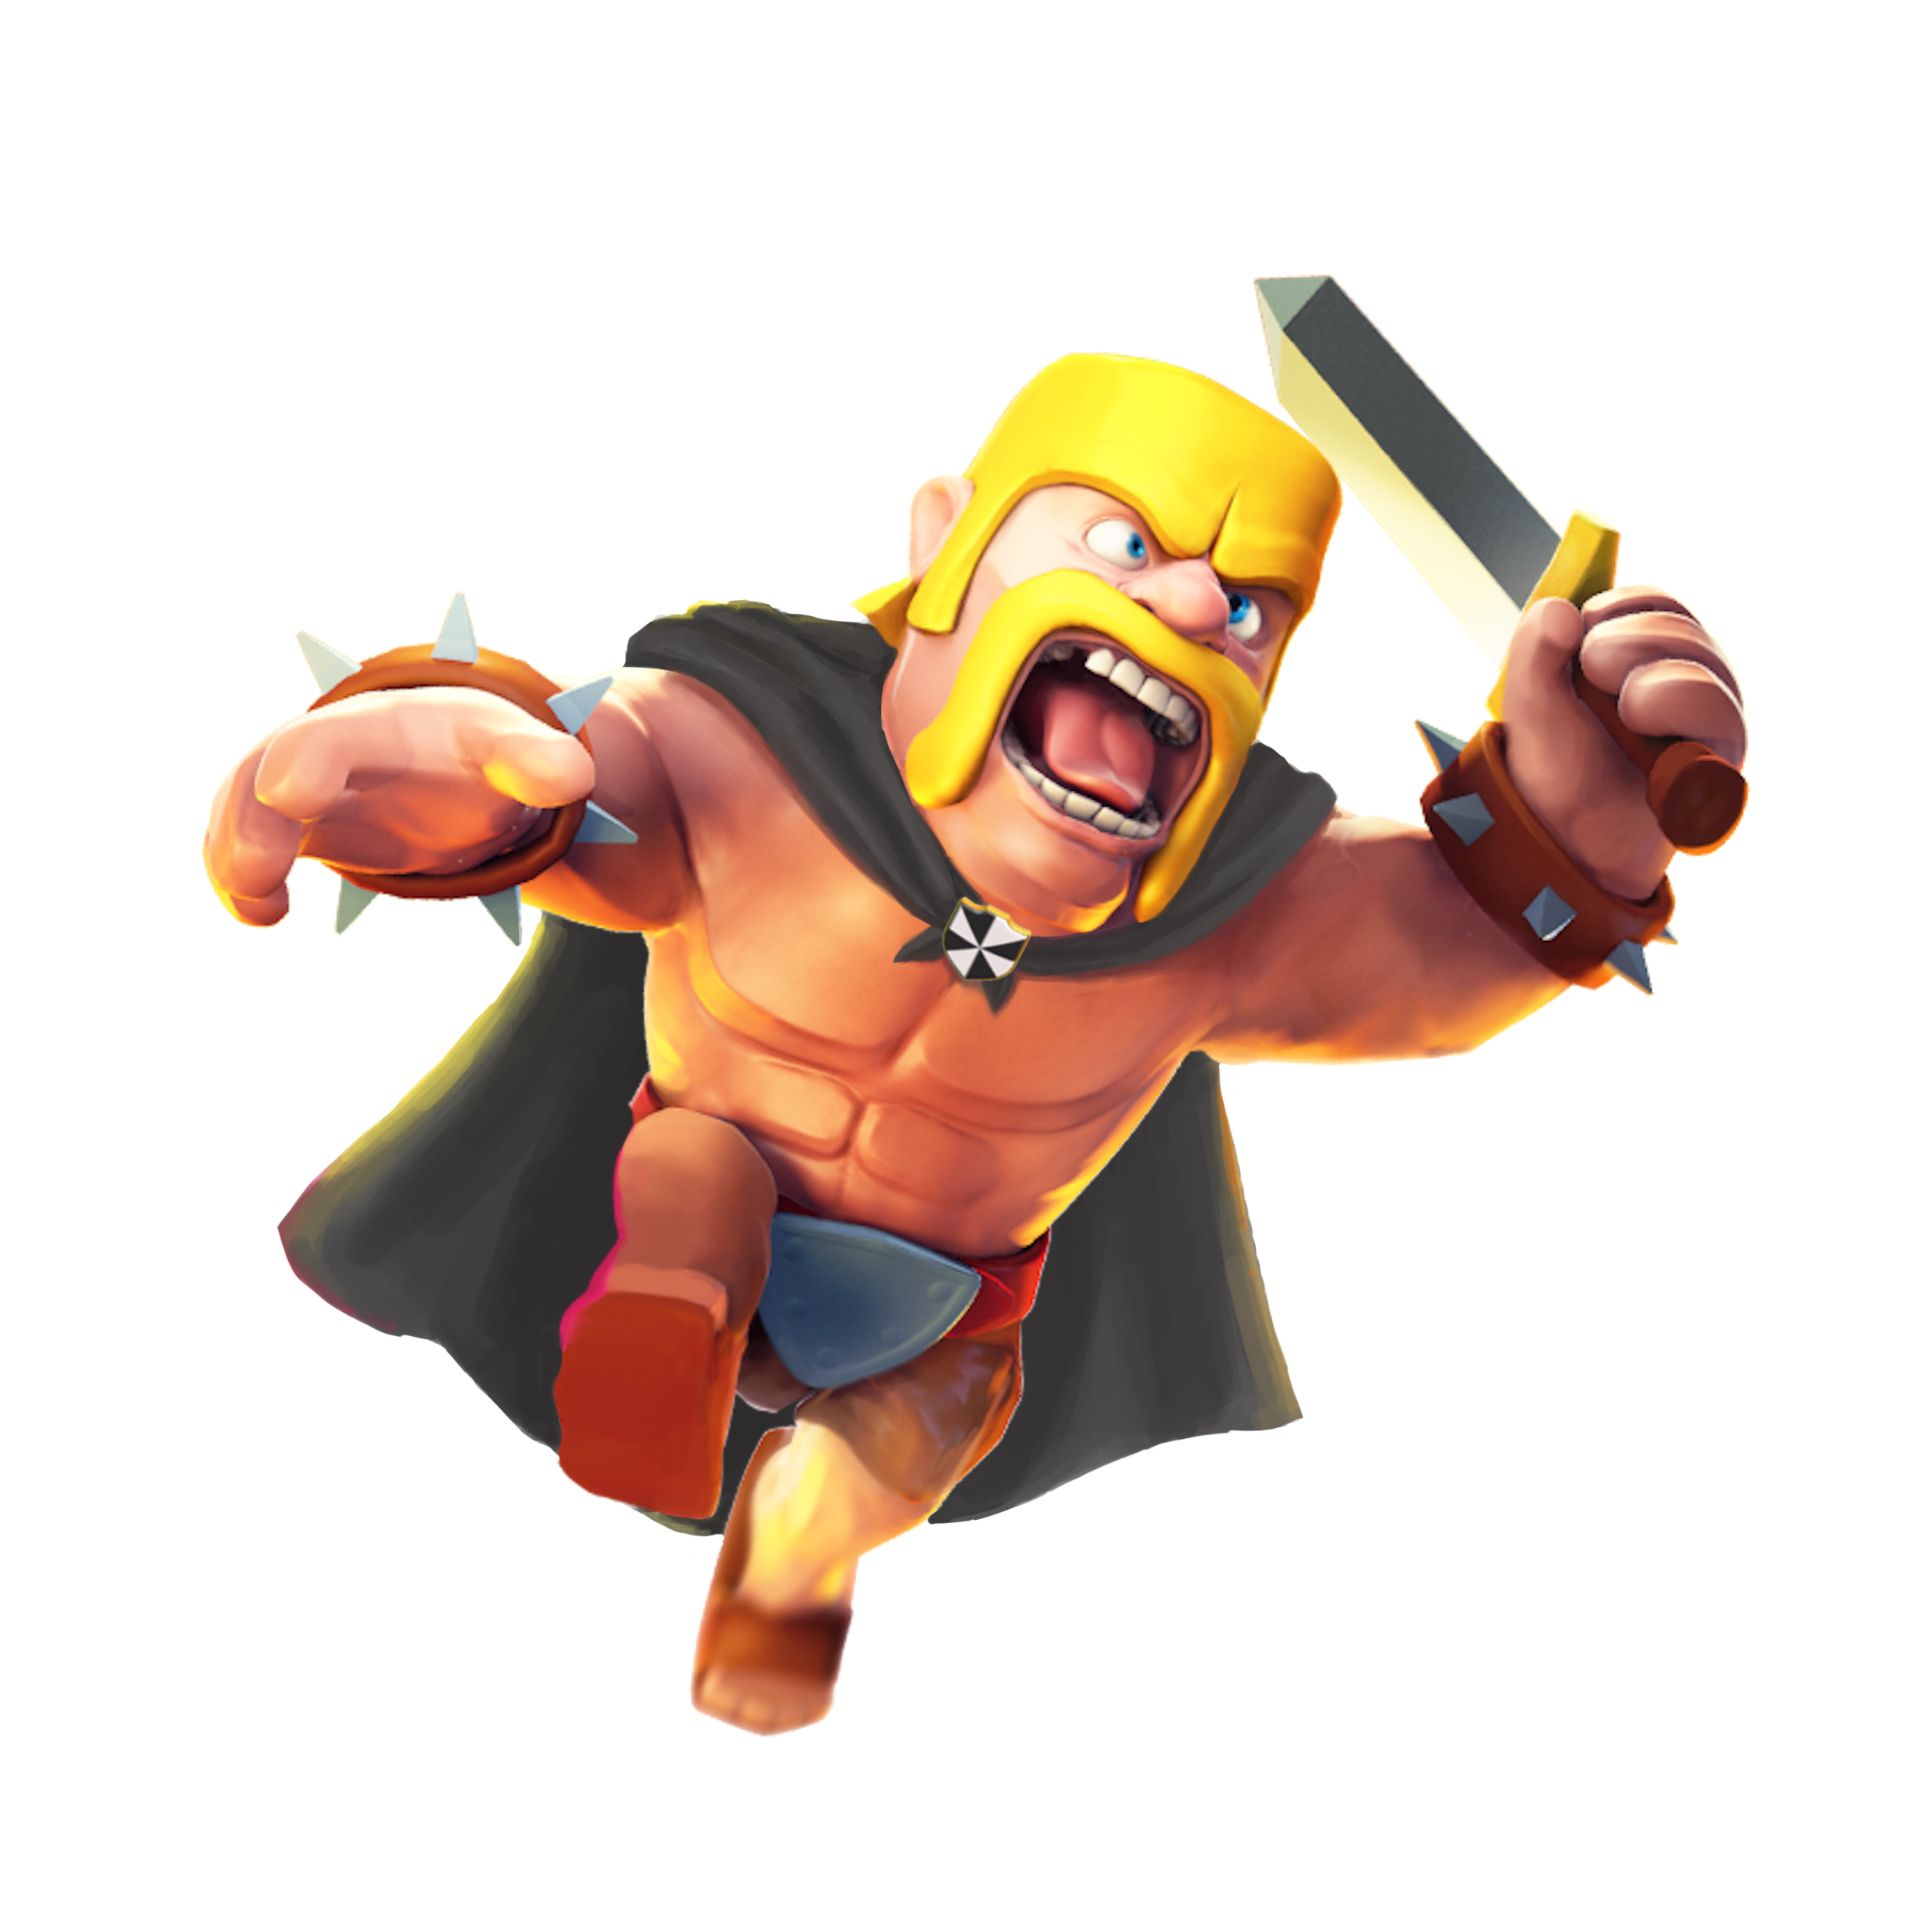 Clash Of Clans Characters 10531 MOVDATA 2480x2471